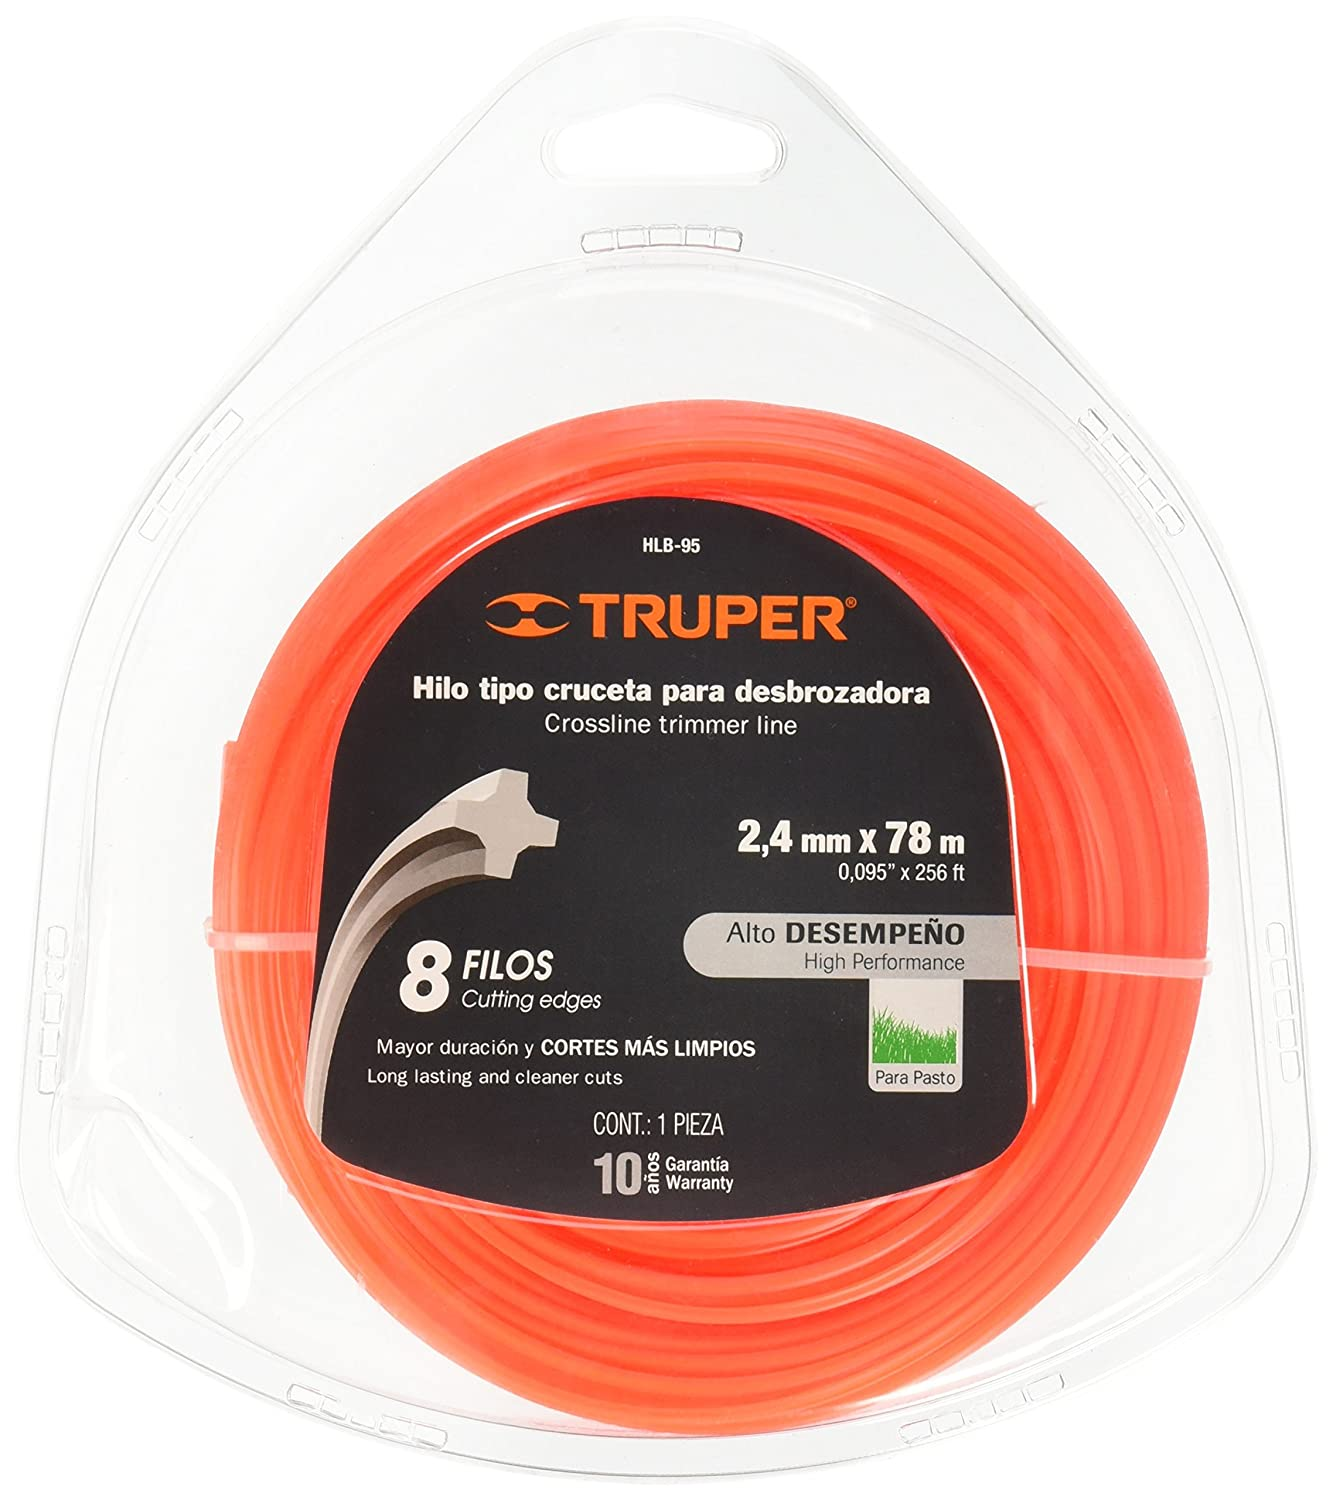 Amazon.com : TRUPER HLB-95 Rounded Strings in Clamshell Card ...